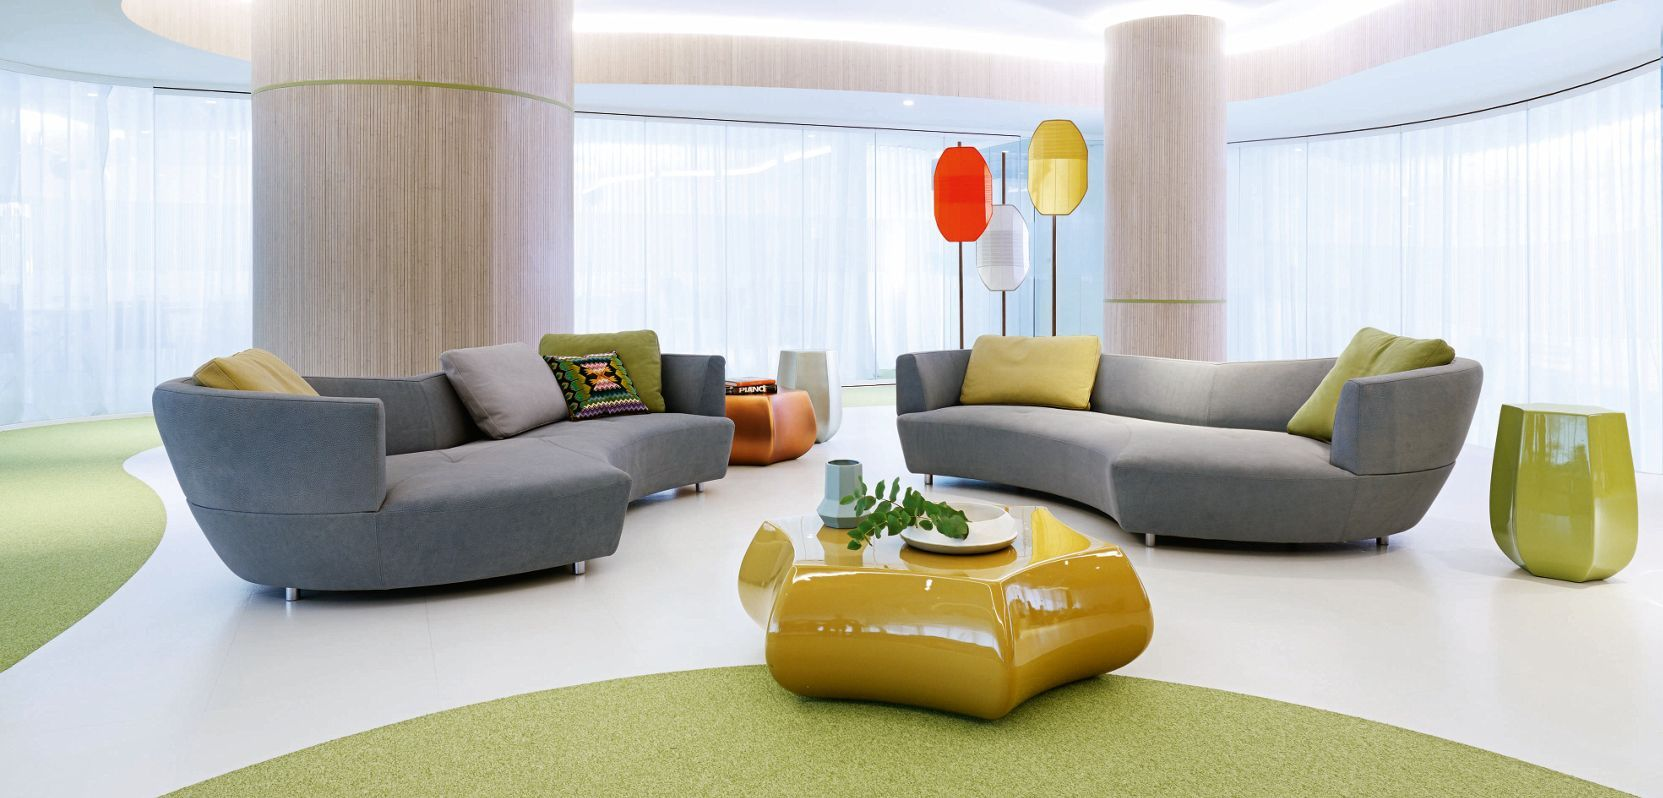 digital large round 3 seat sofa sofa design sofa furniture